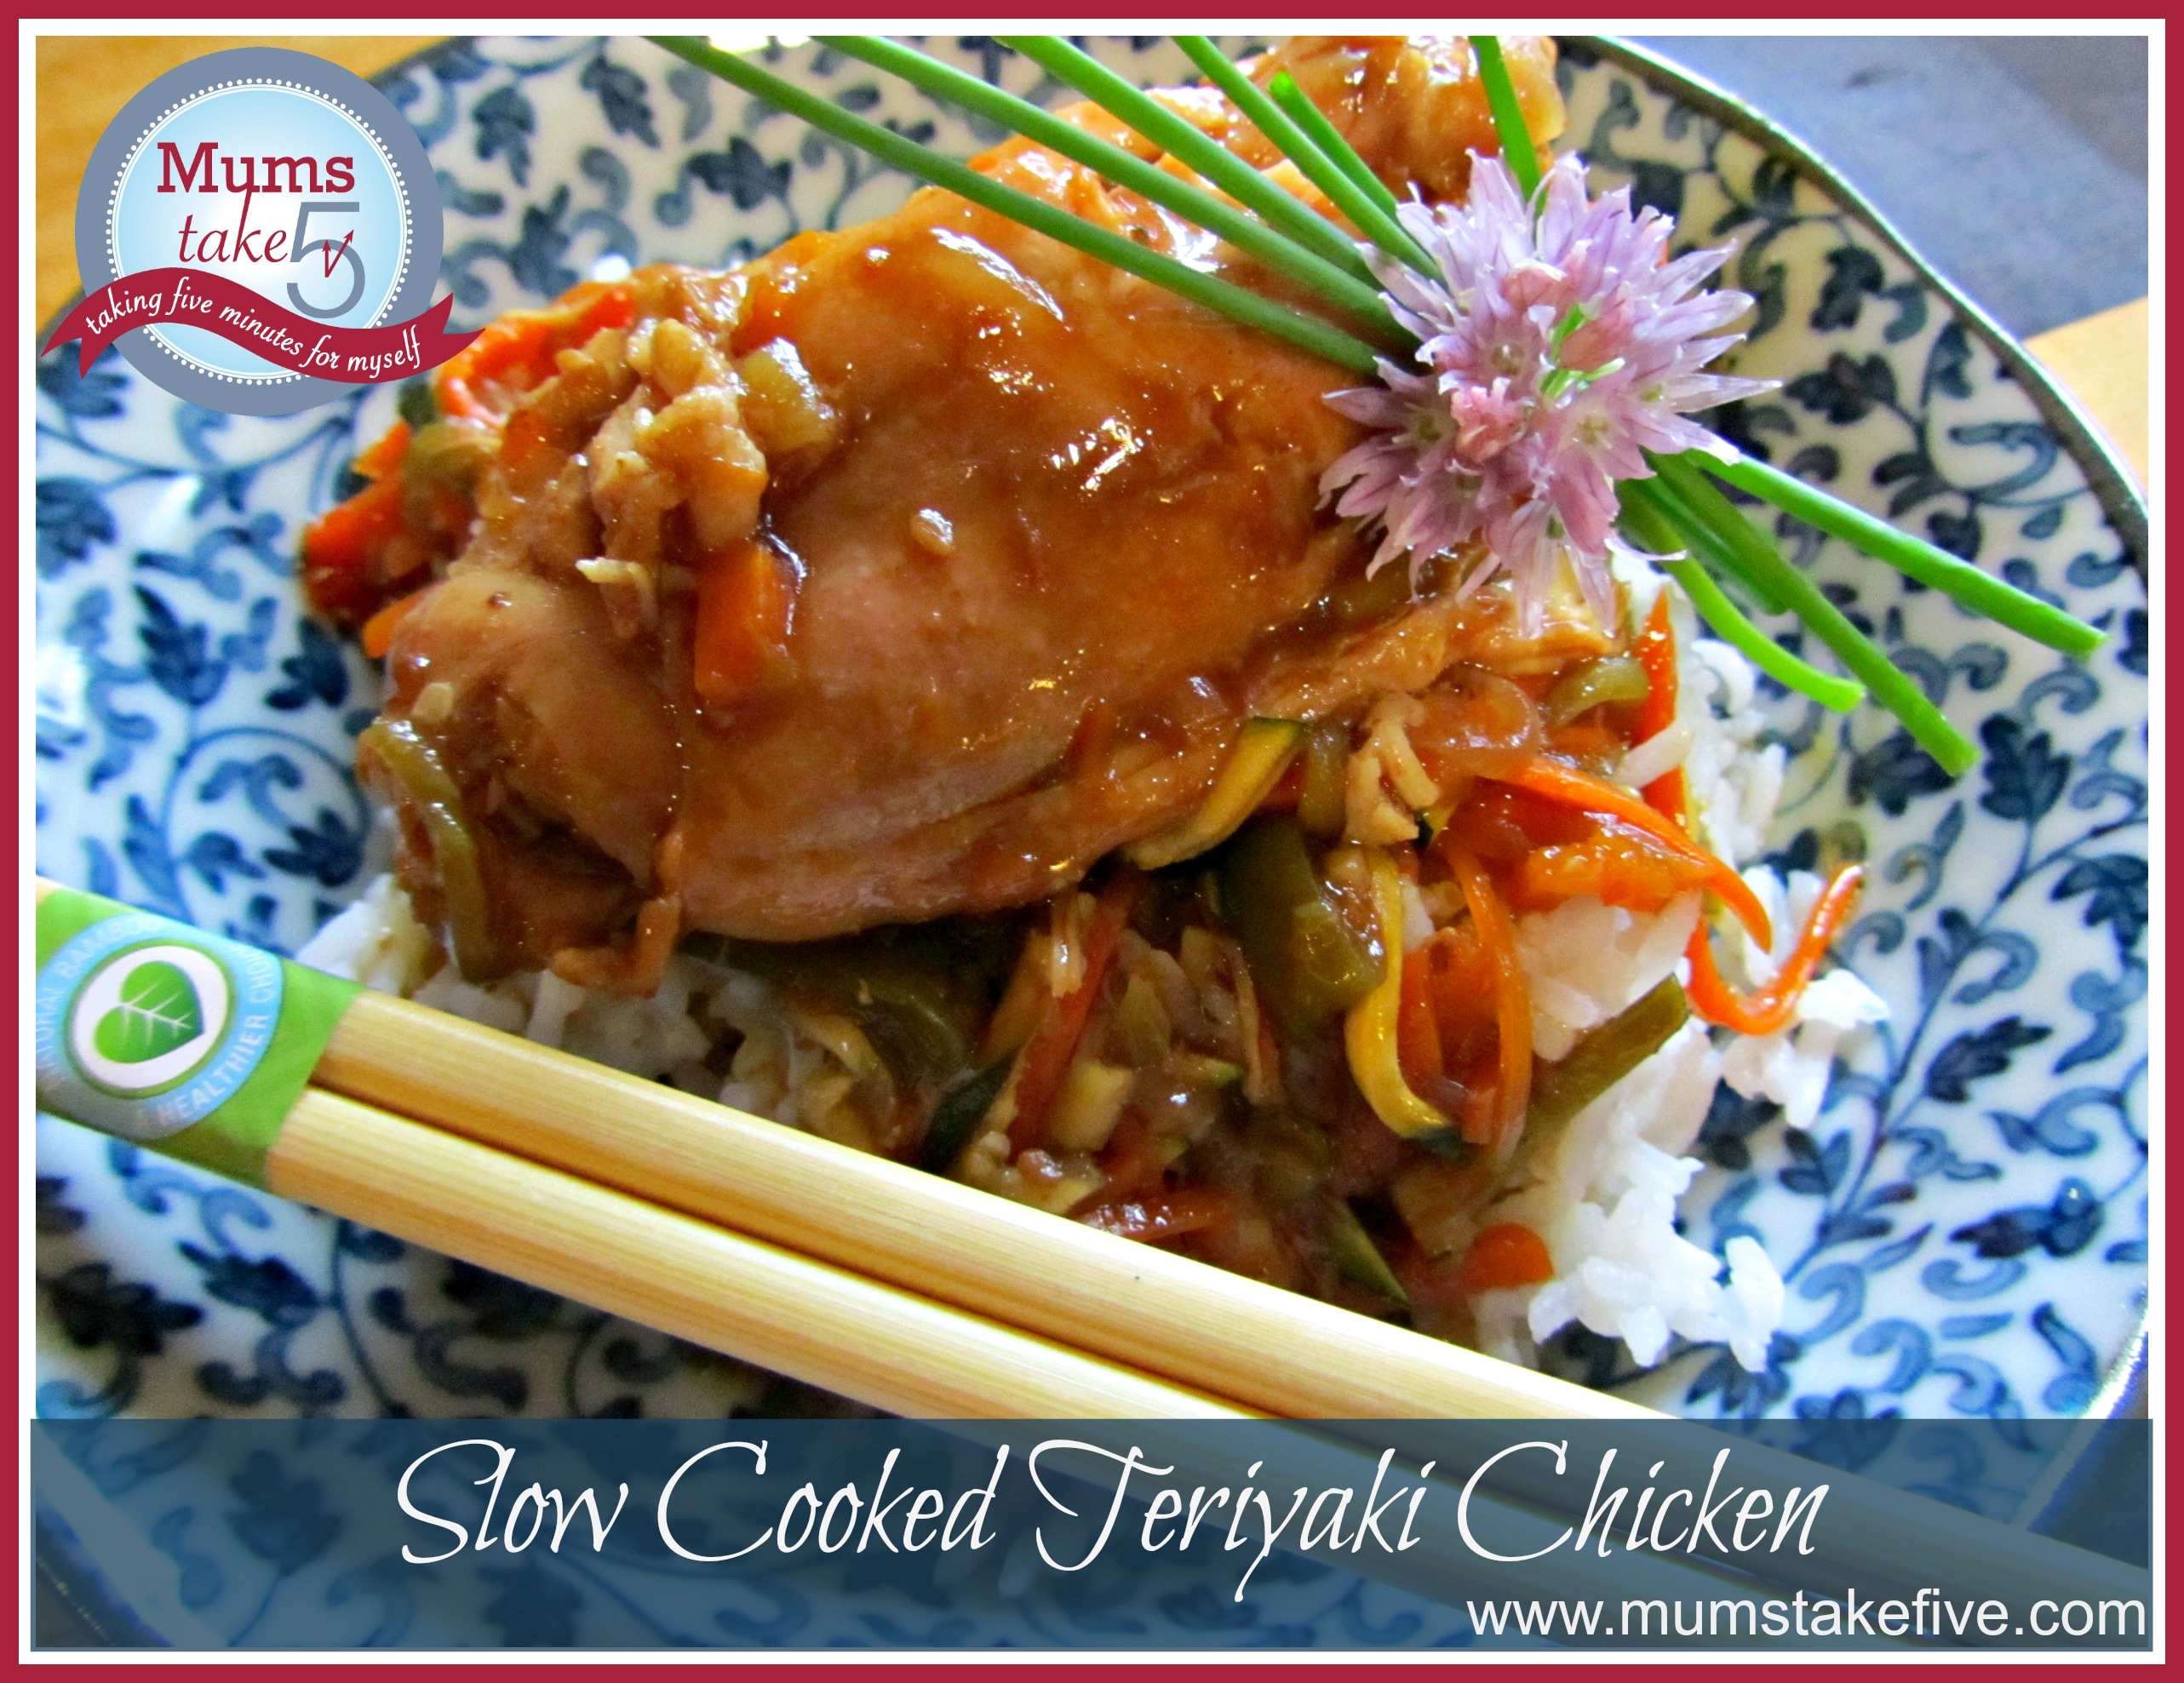 Slow Cooked Teriyaki Chicken